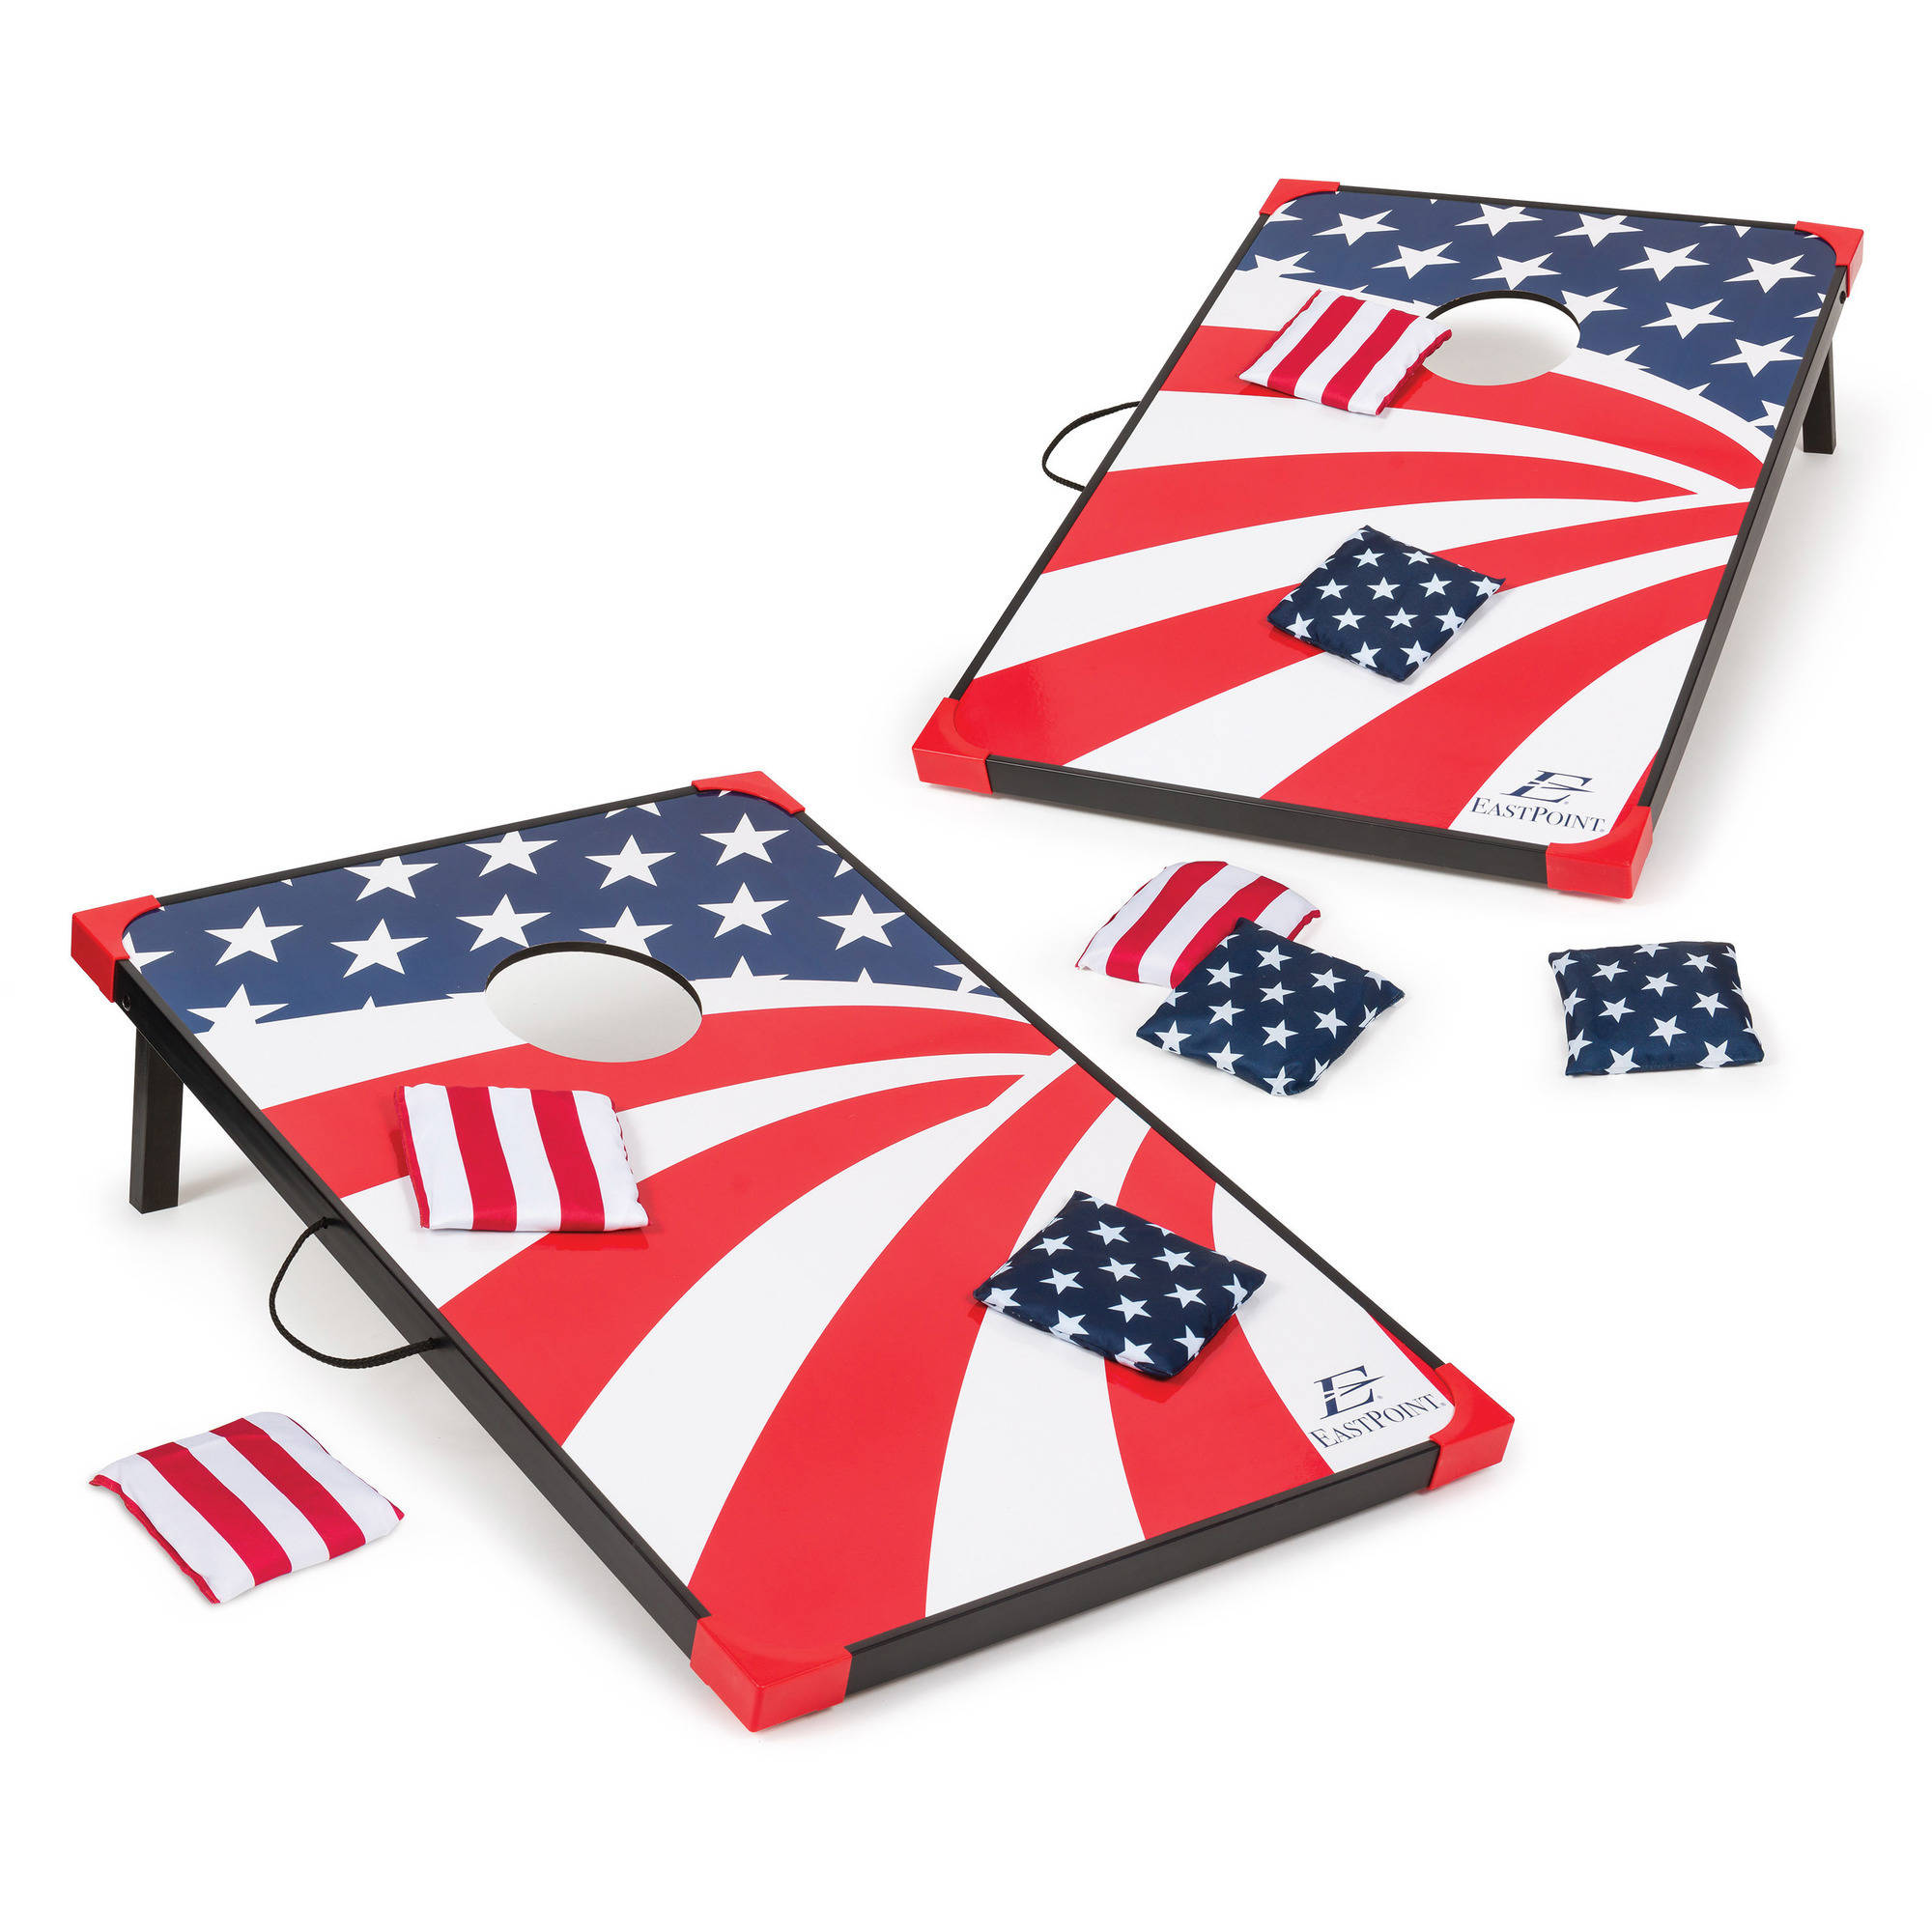 Stars and Stripes Bean Bag Corn Hole Toss